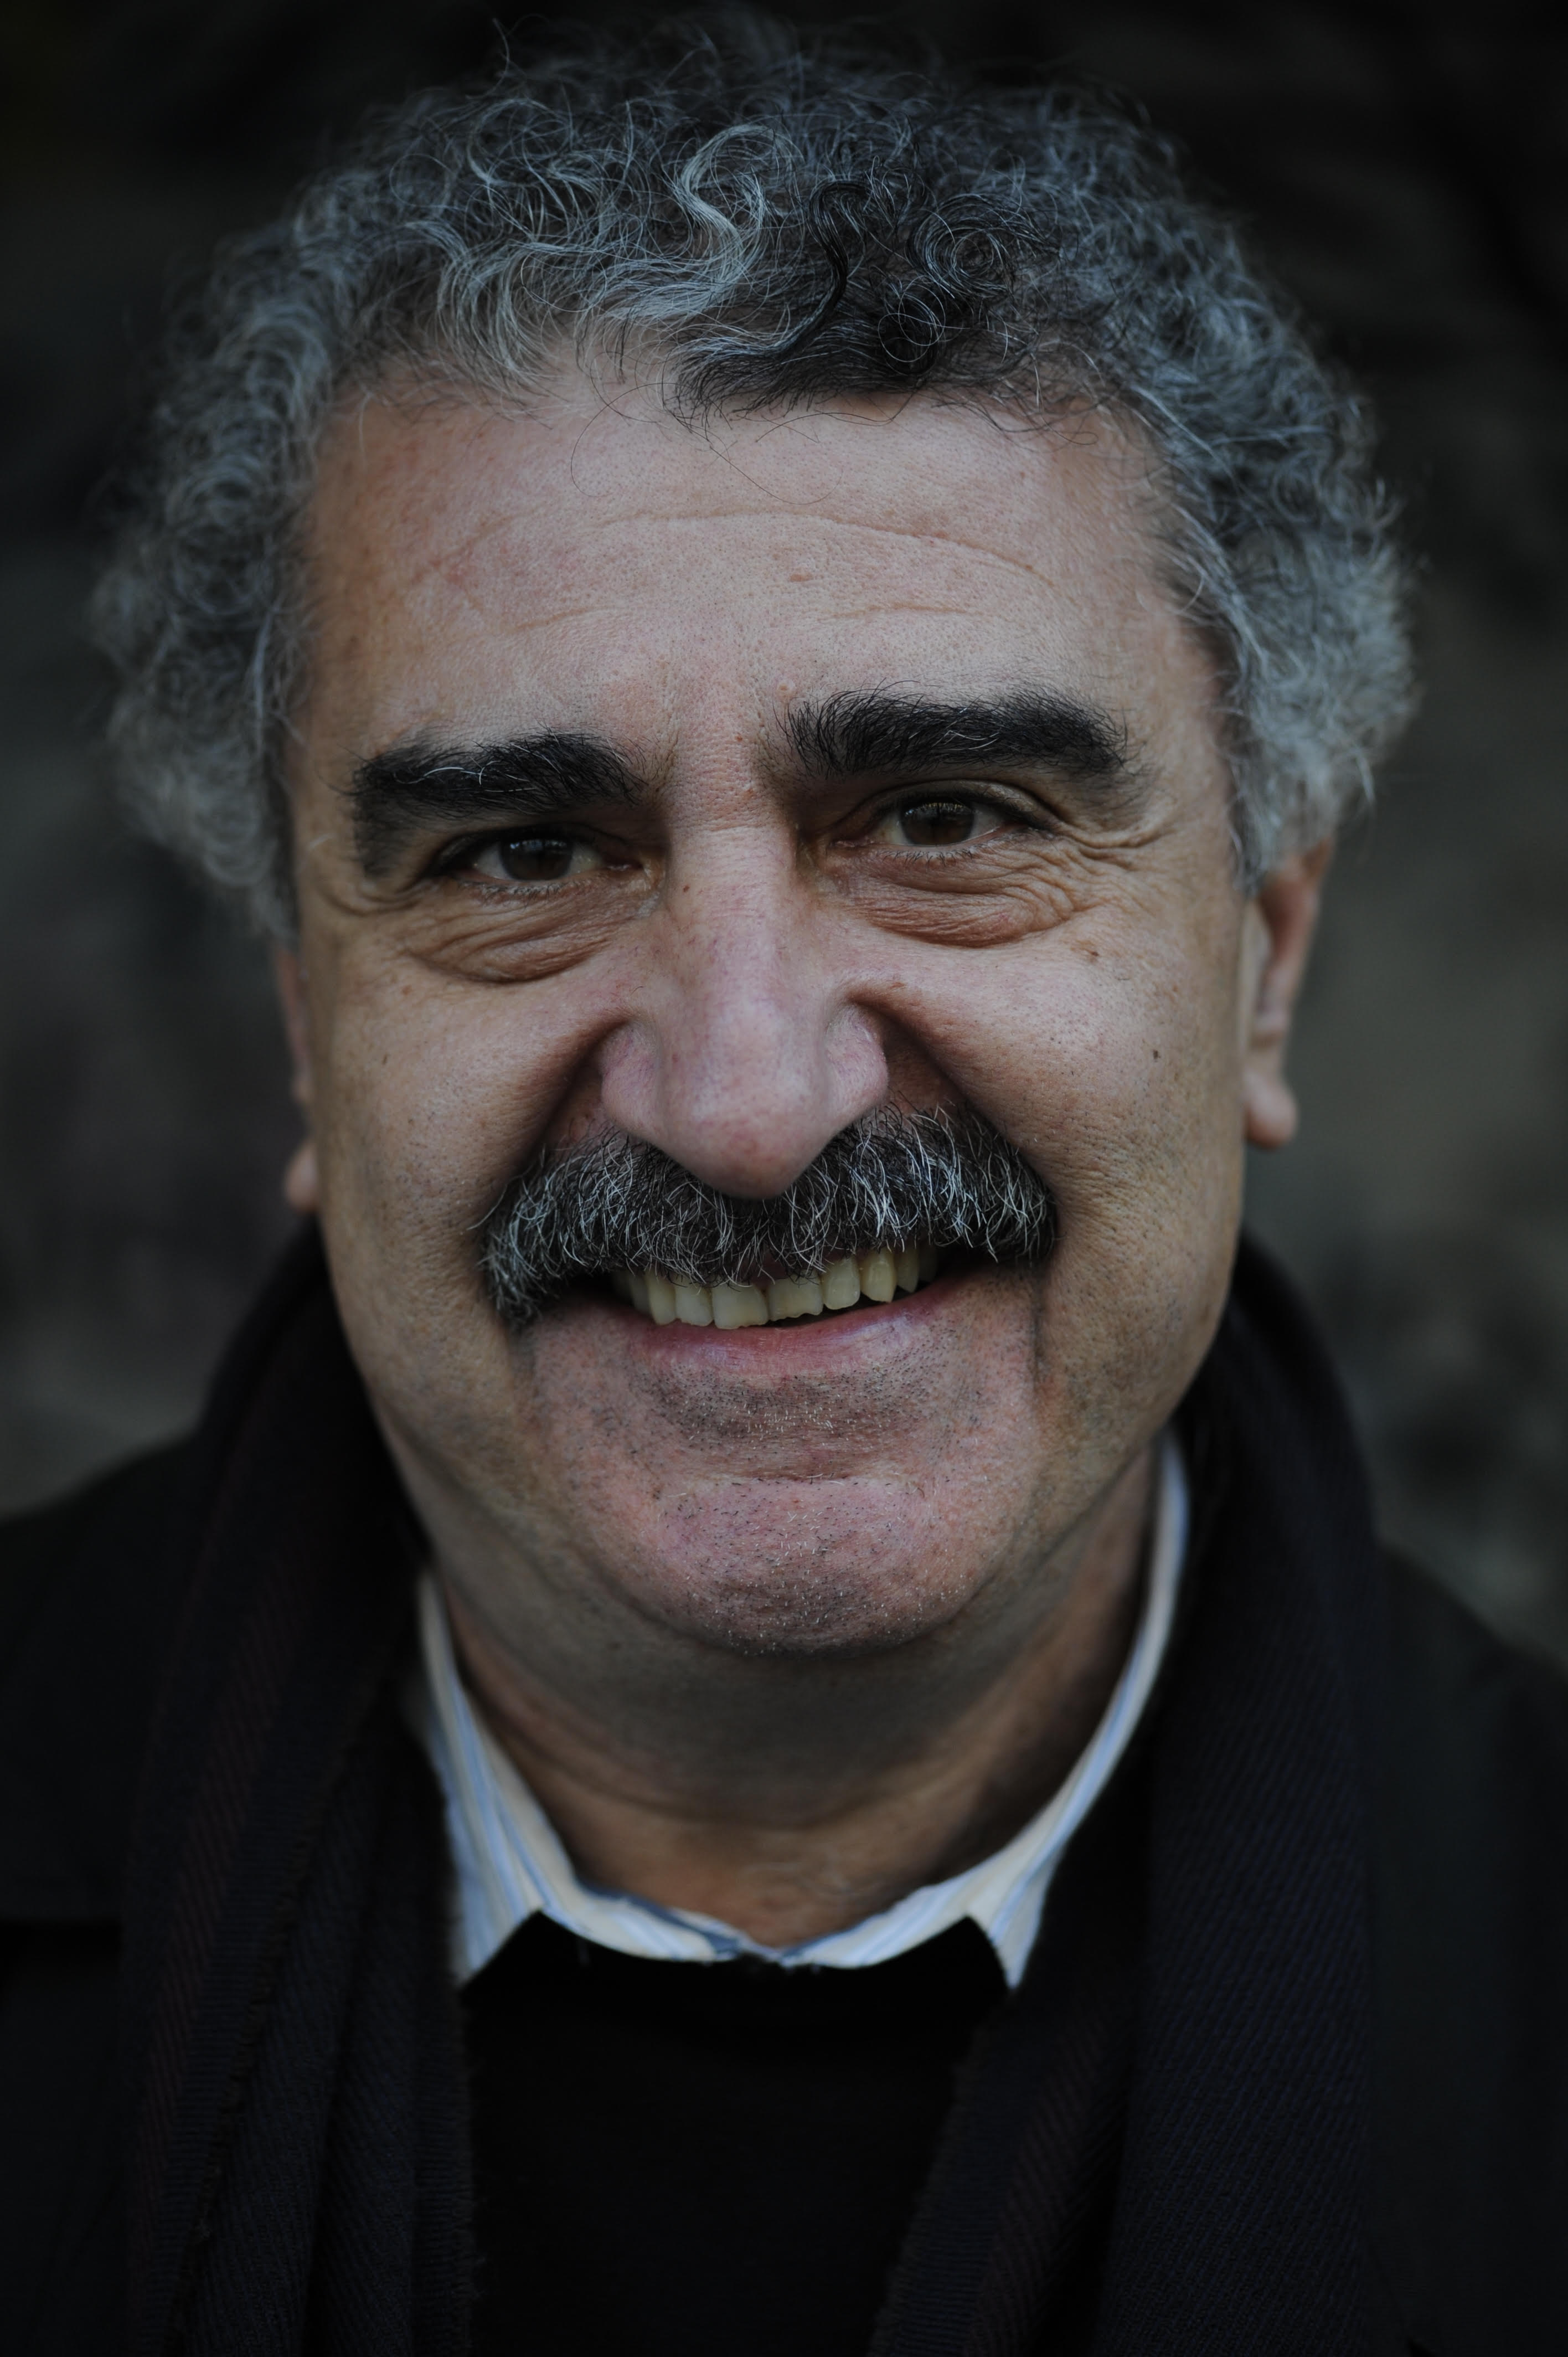 Lebanese writer and journalist Hassan Daoud. (Photo handout)